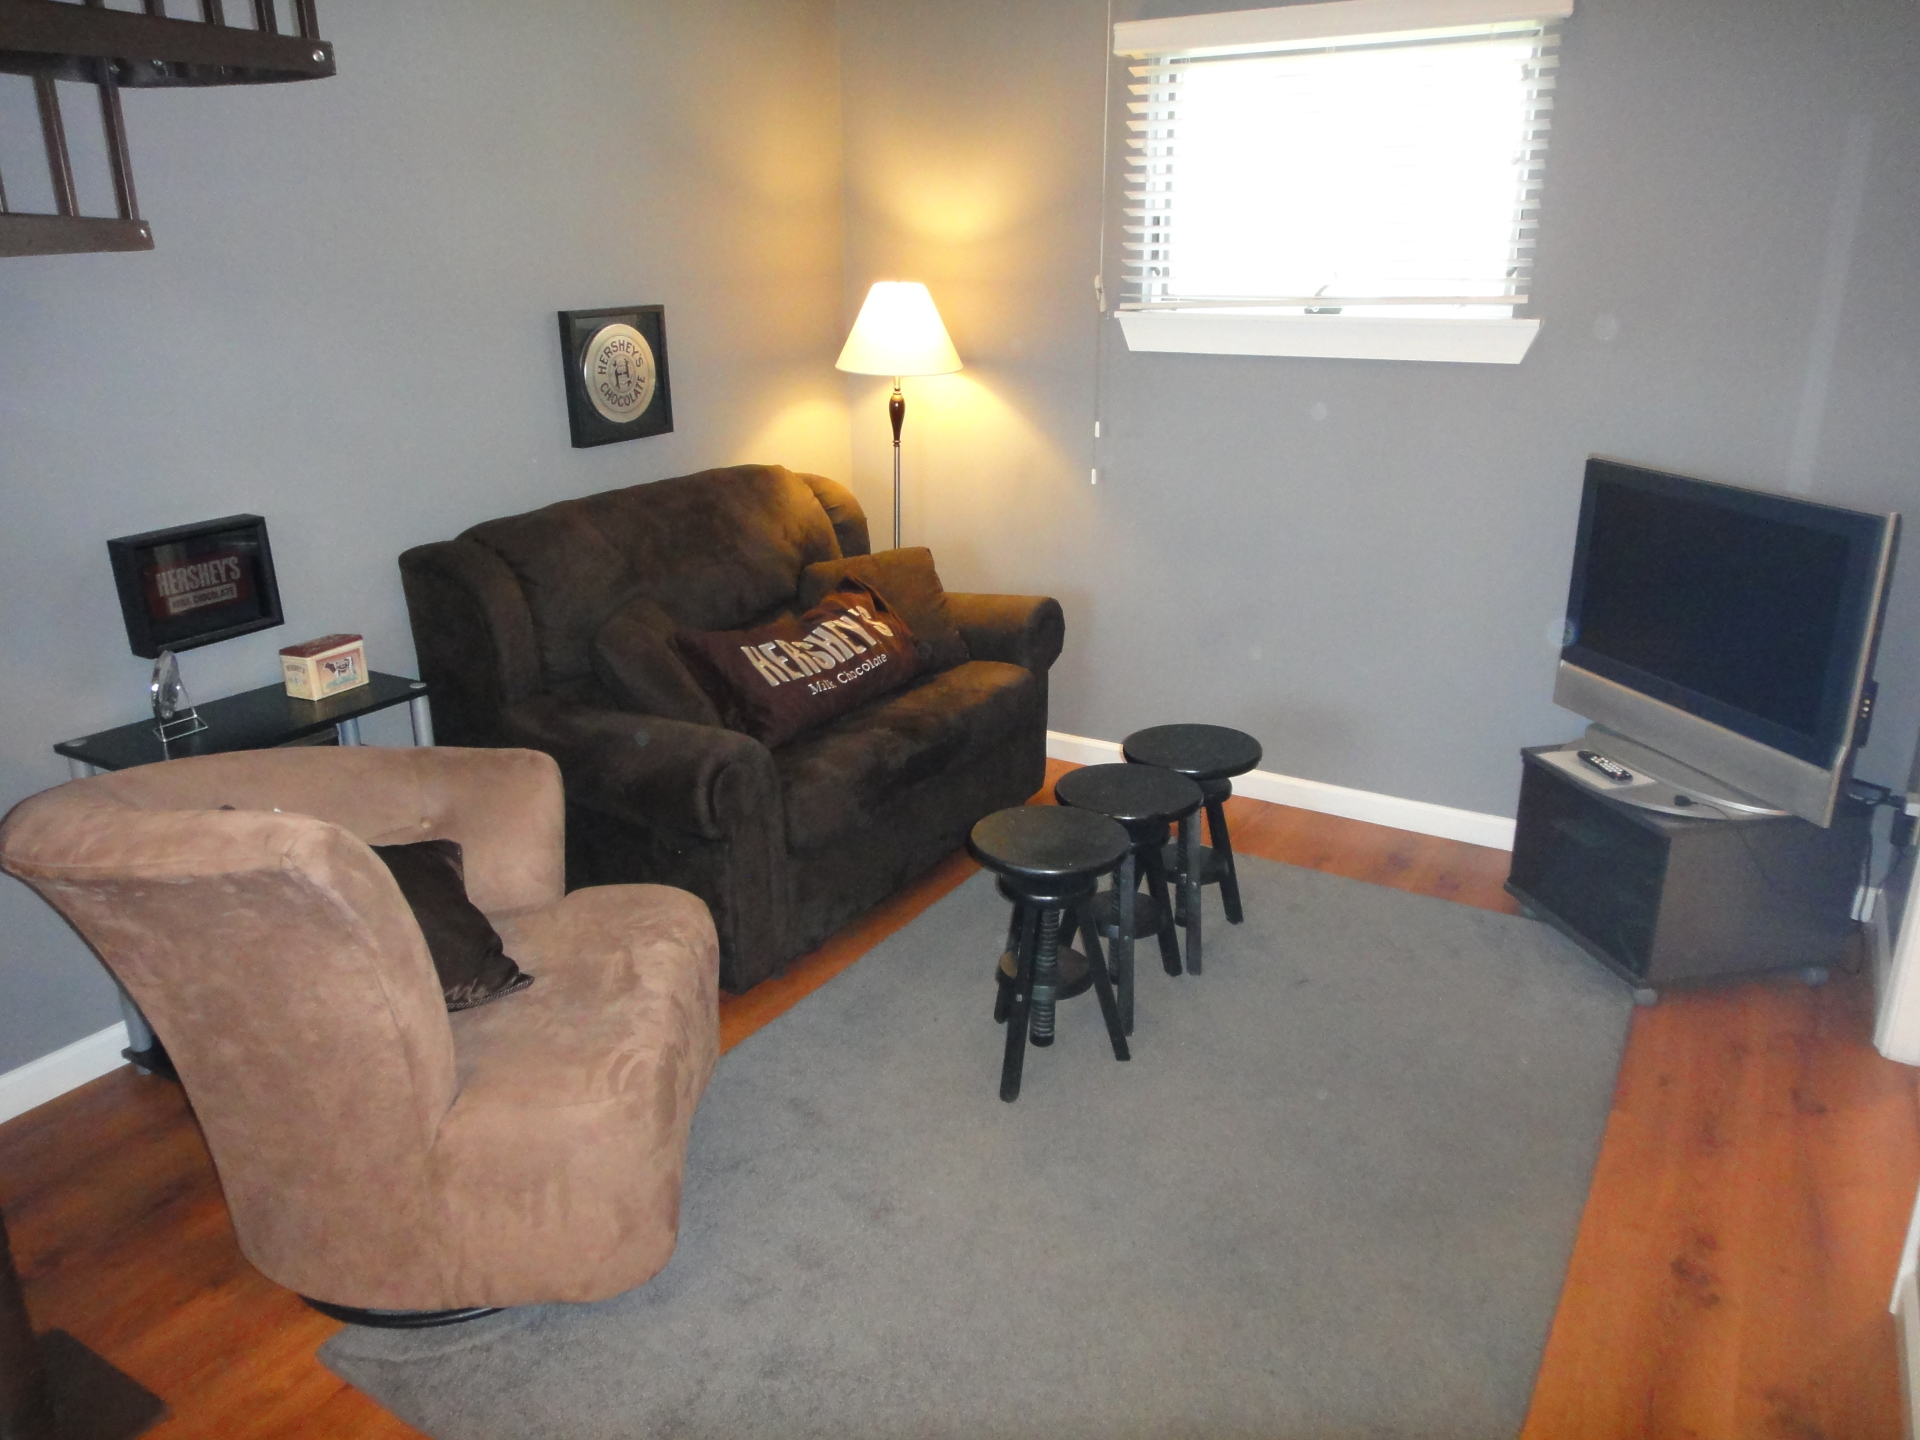 short term housing in hershey pa, extended stay apartments in hershey pa